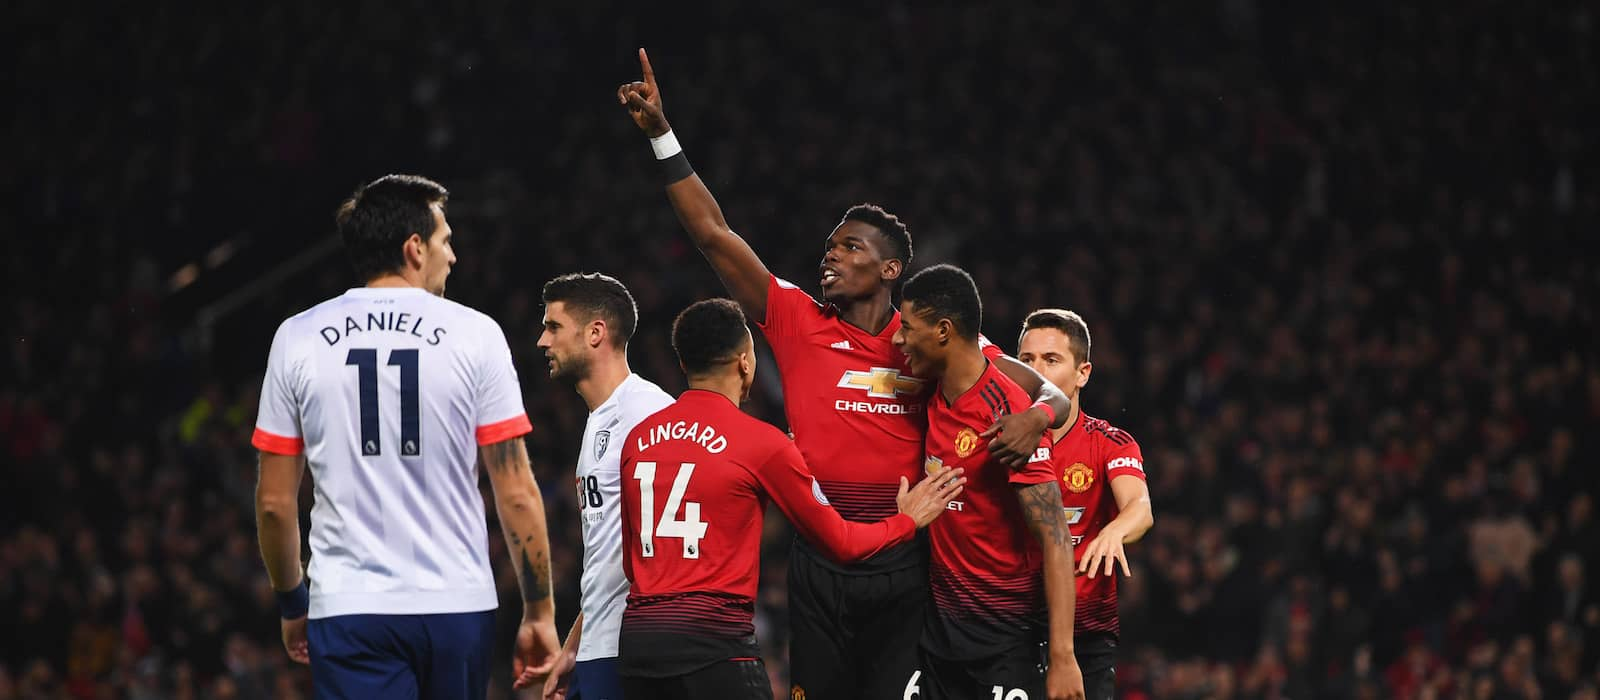 Photo gallery: Manchester United 4-1 AFC Bournemouth